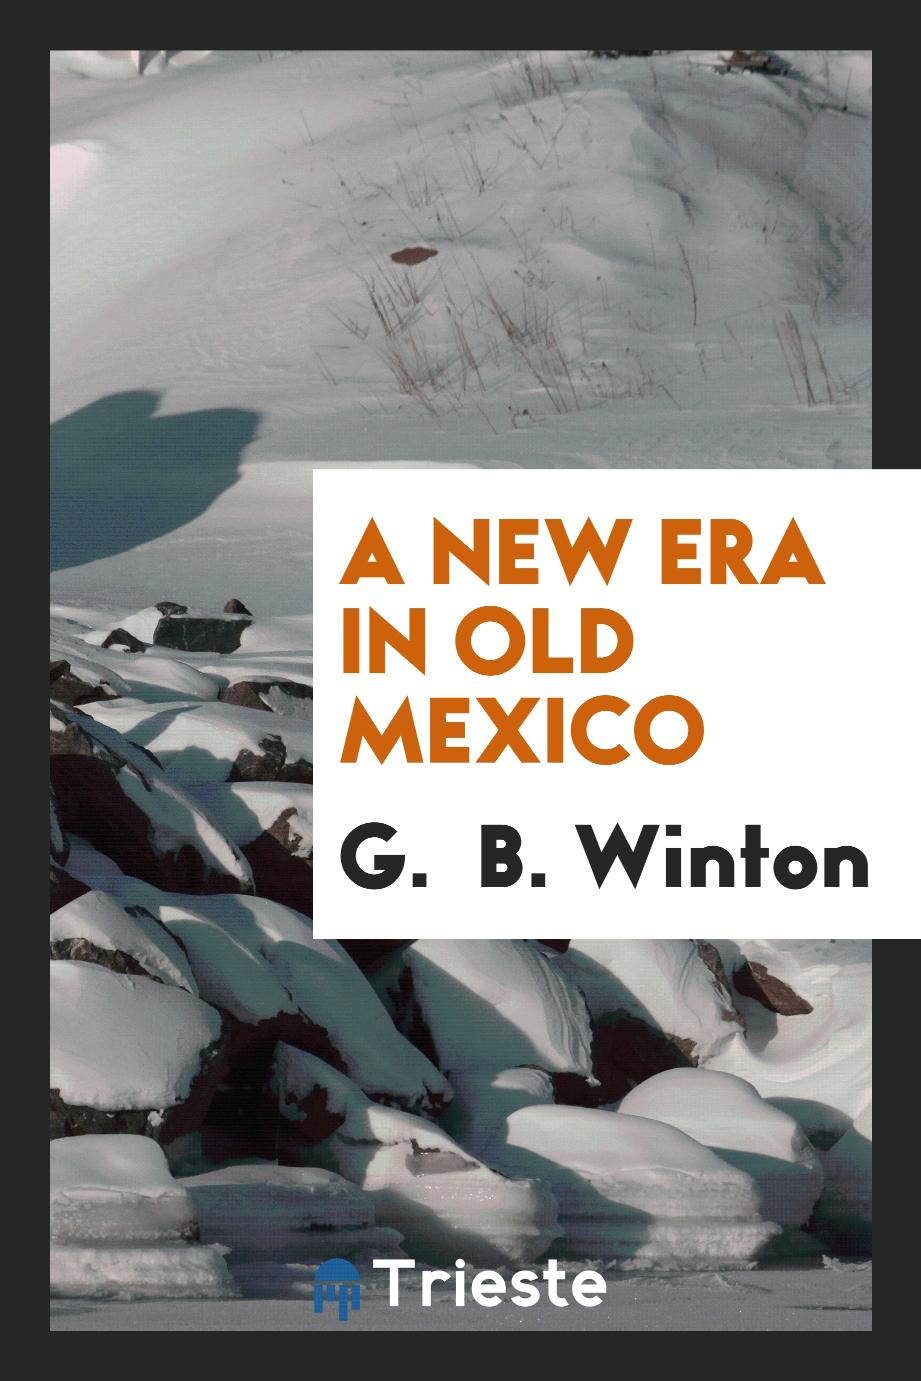 A new era in old Mexico